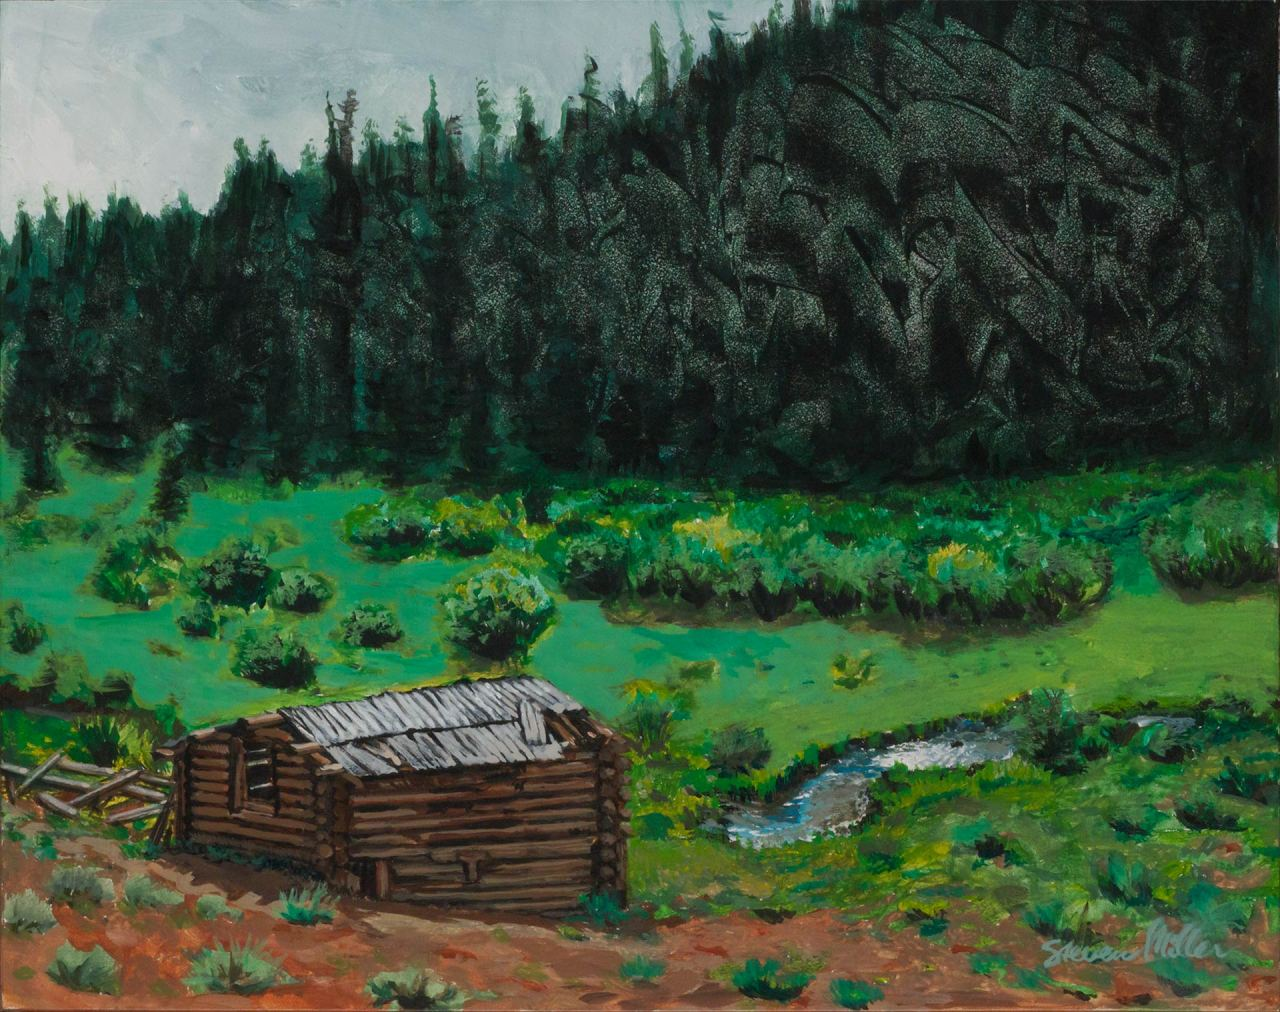 """Landscape painting of a cabin and river in the mountains with lots of green by Steve Miller titled Anomaly, 14"""" x 11"""", acrylic on art masonite, completed 10/3/13, © Steven Miller 2013"""